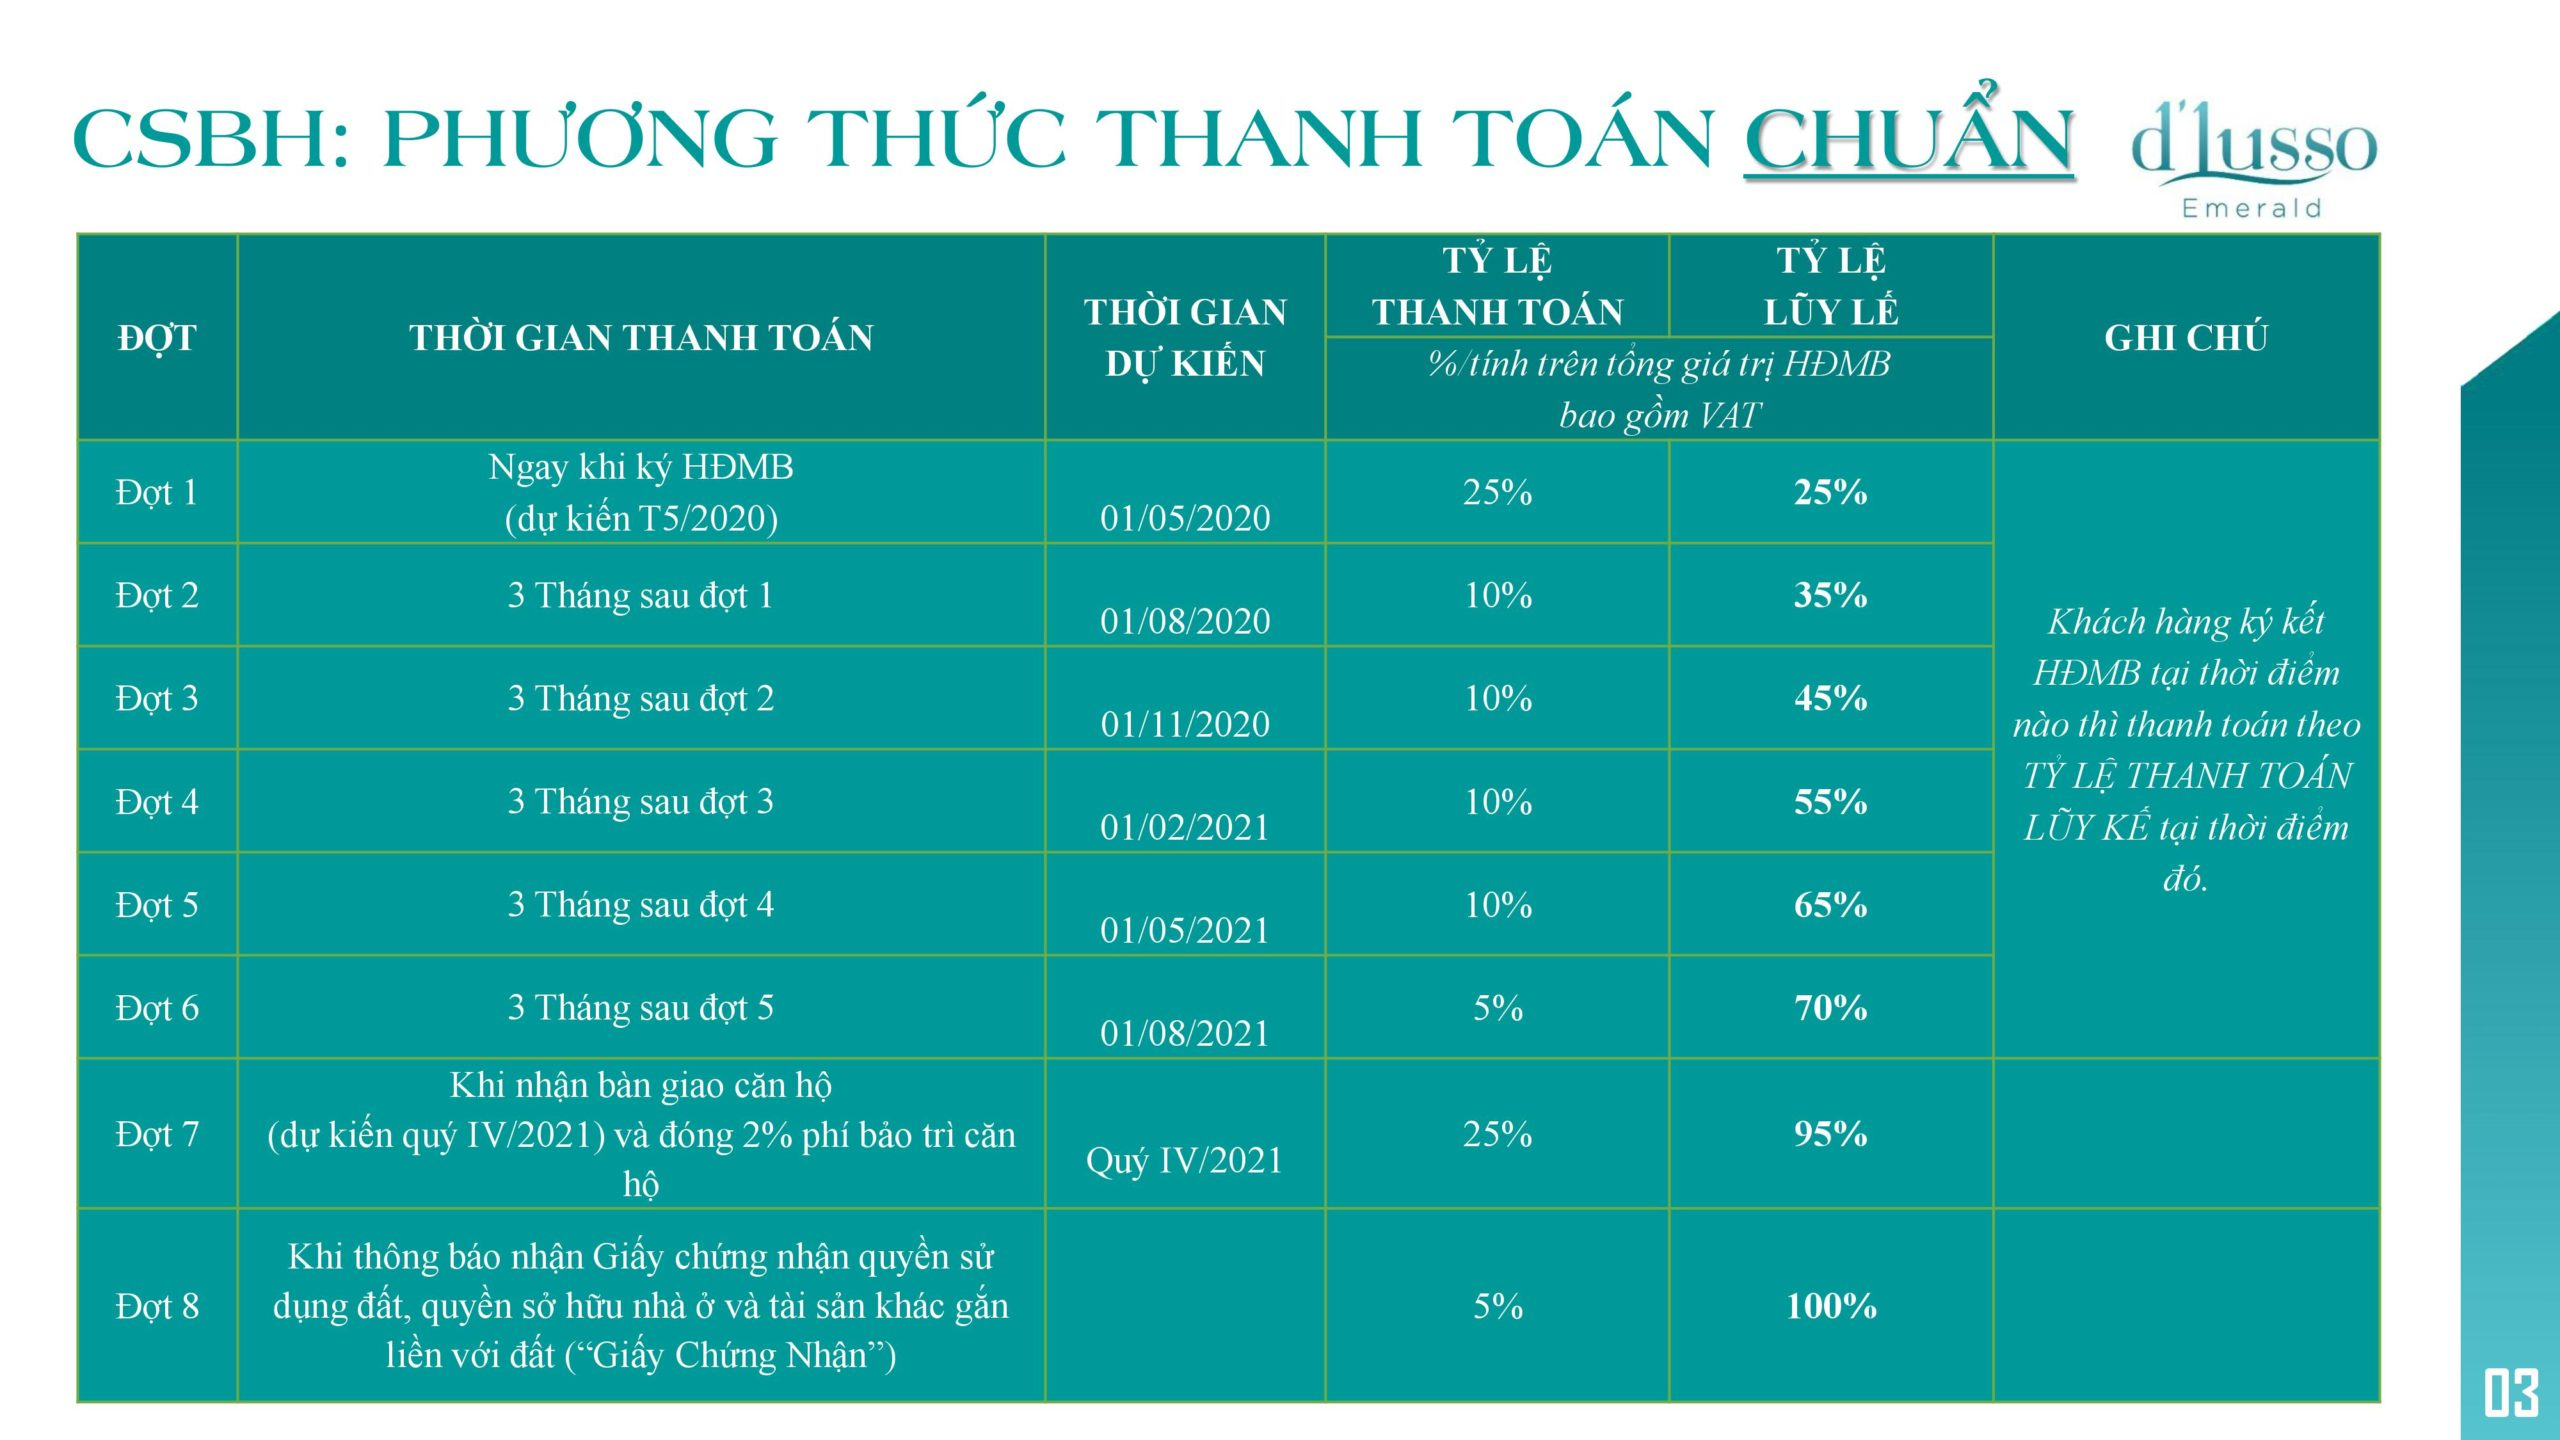 phuong-thuc-thanh-toan-chuan-dlusso